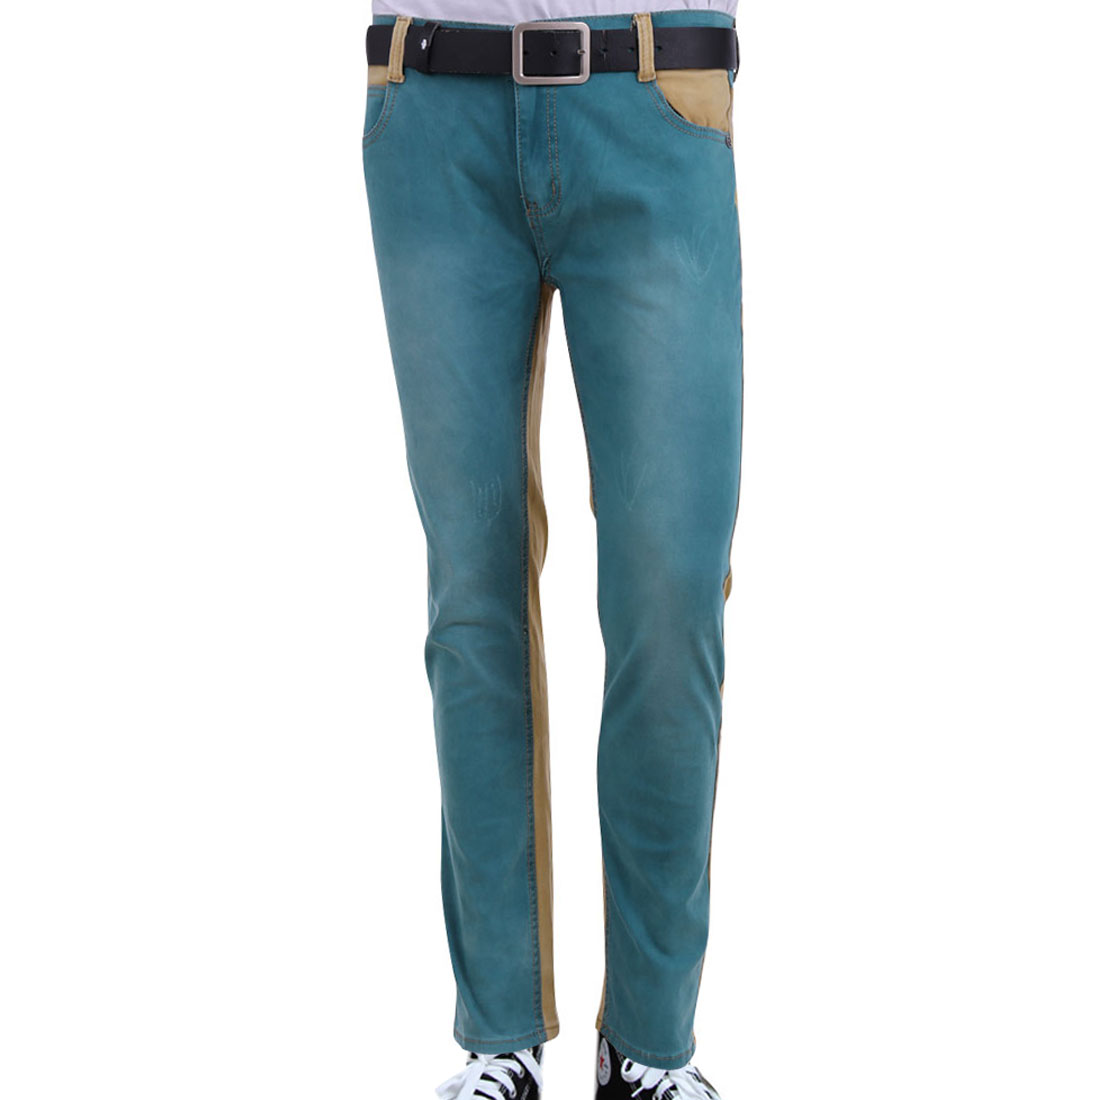 Men Close-fitting Destroyed Detail w Pockets Camel Teal Pants W31